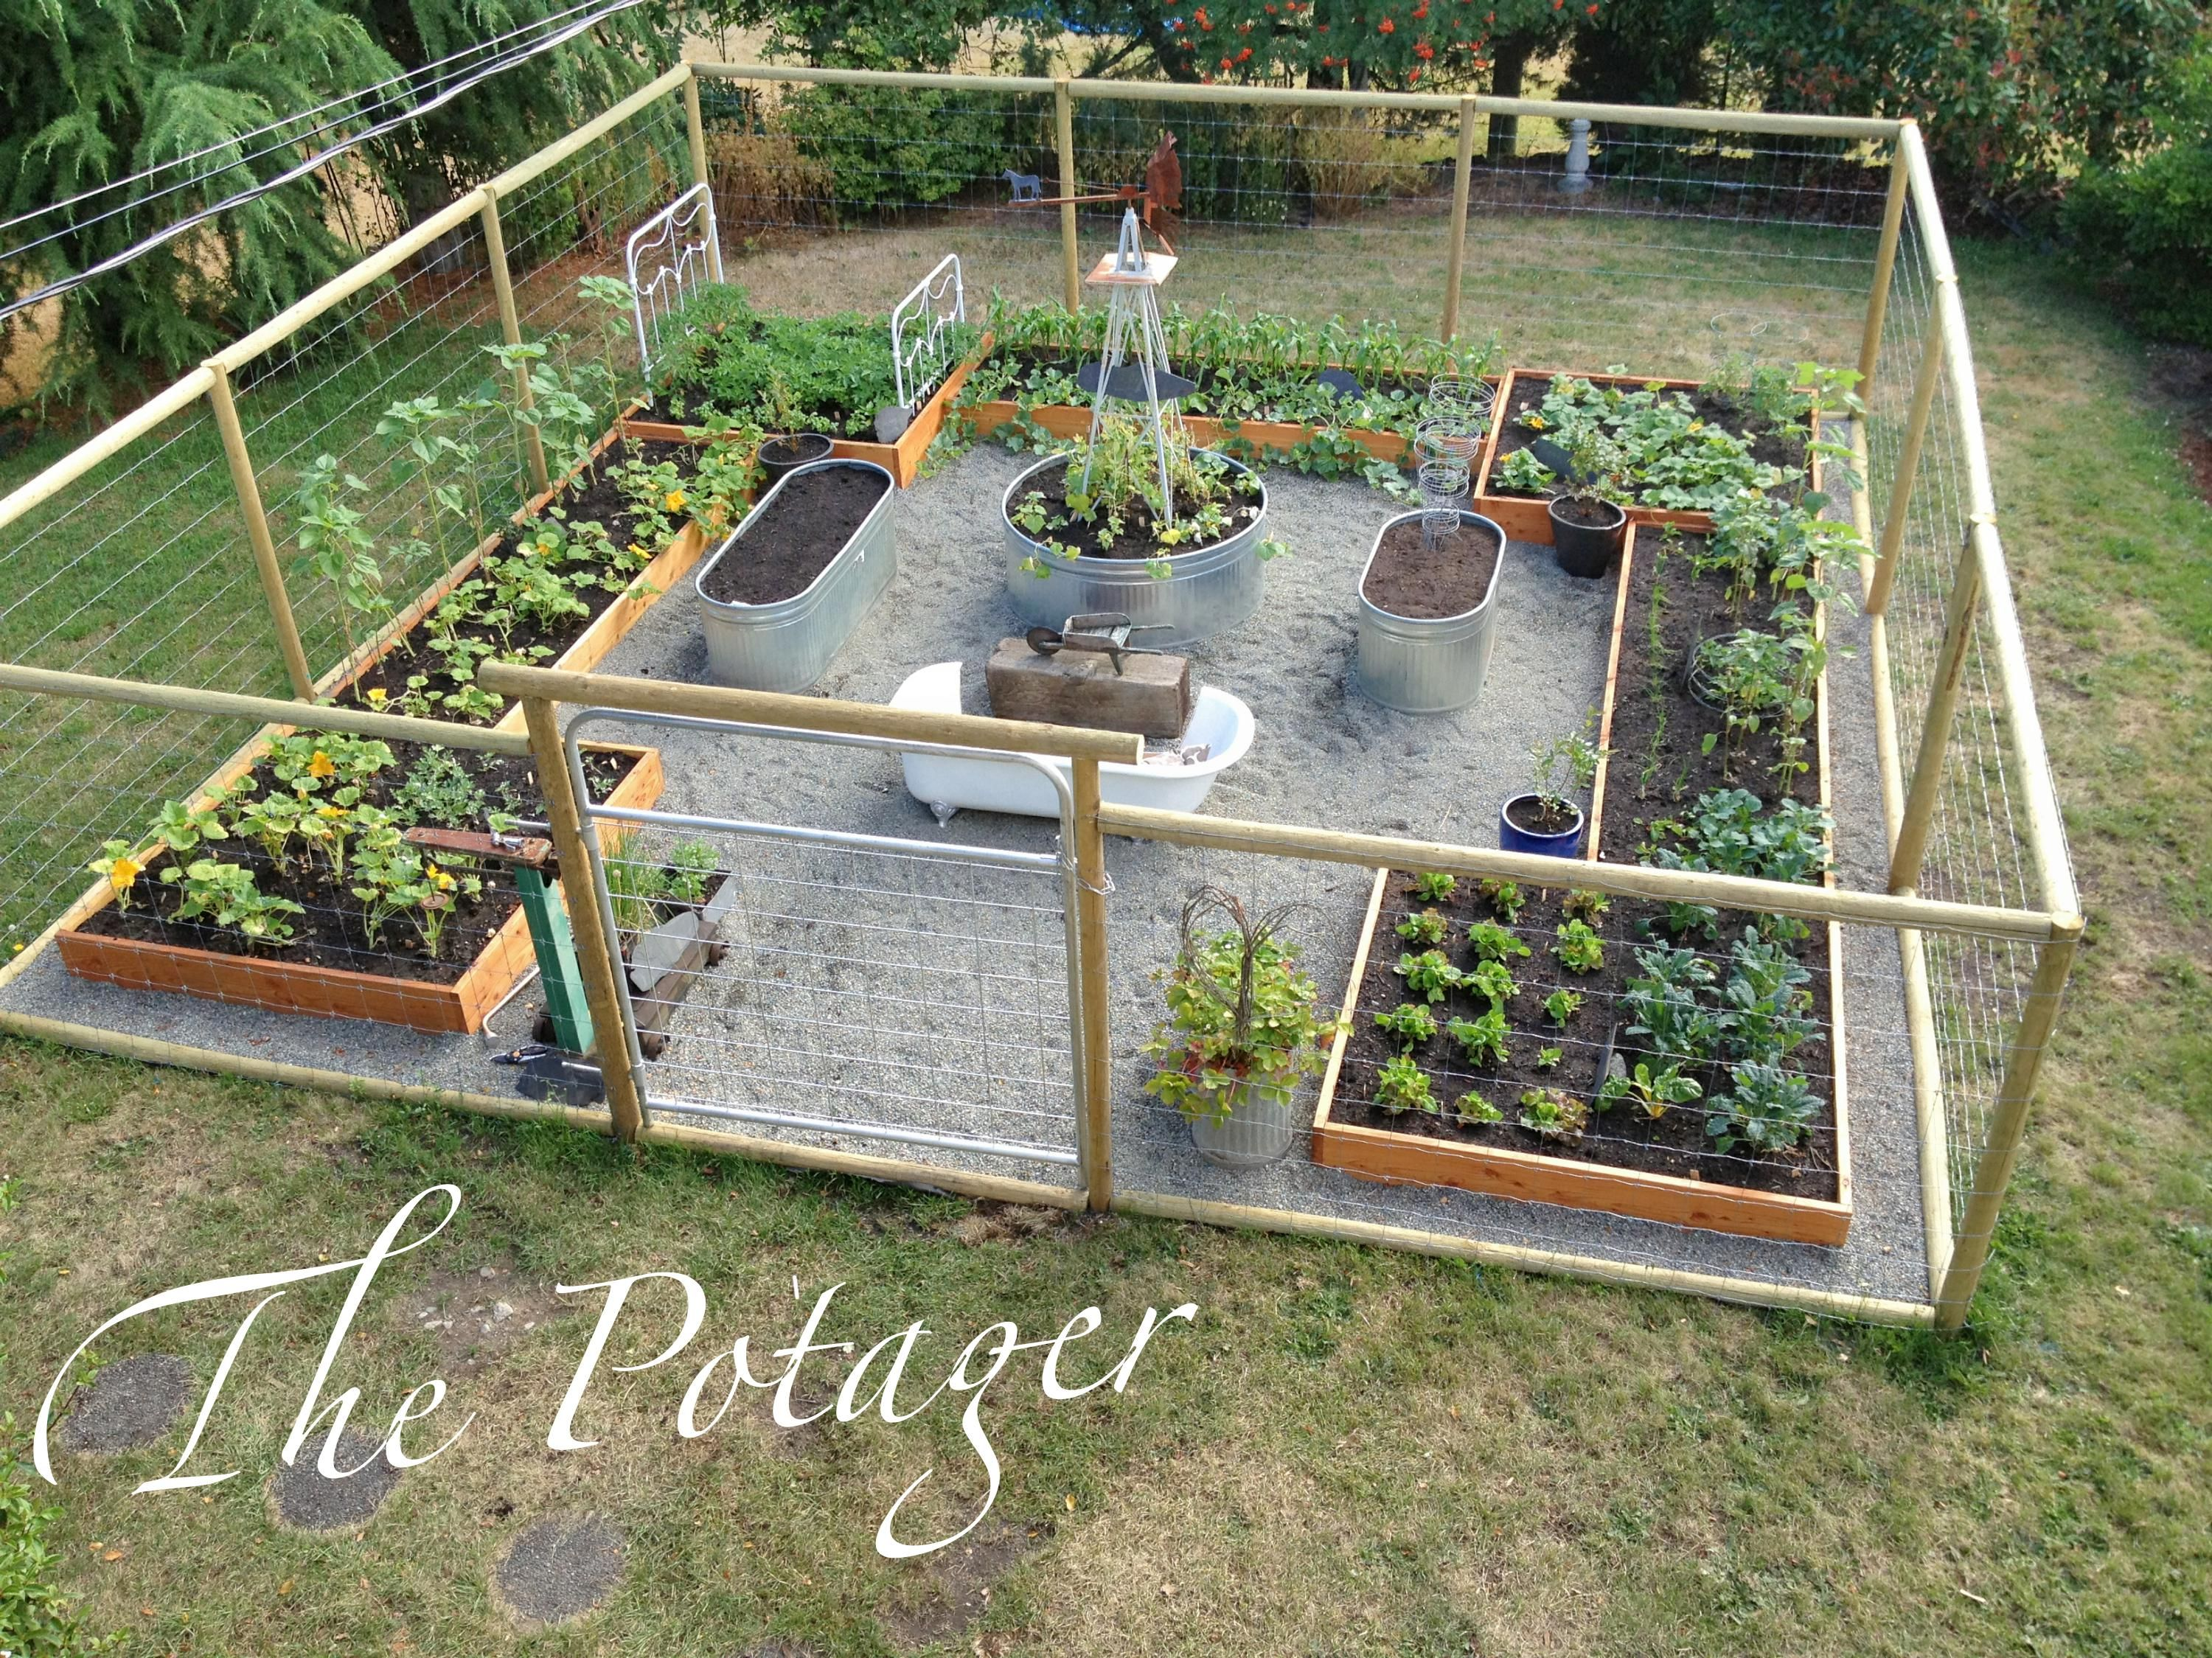 House and Bloom From Grass To Garden presenting The Potager